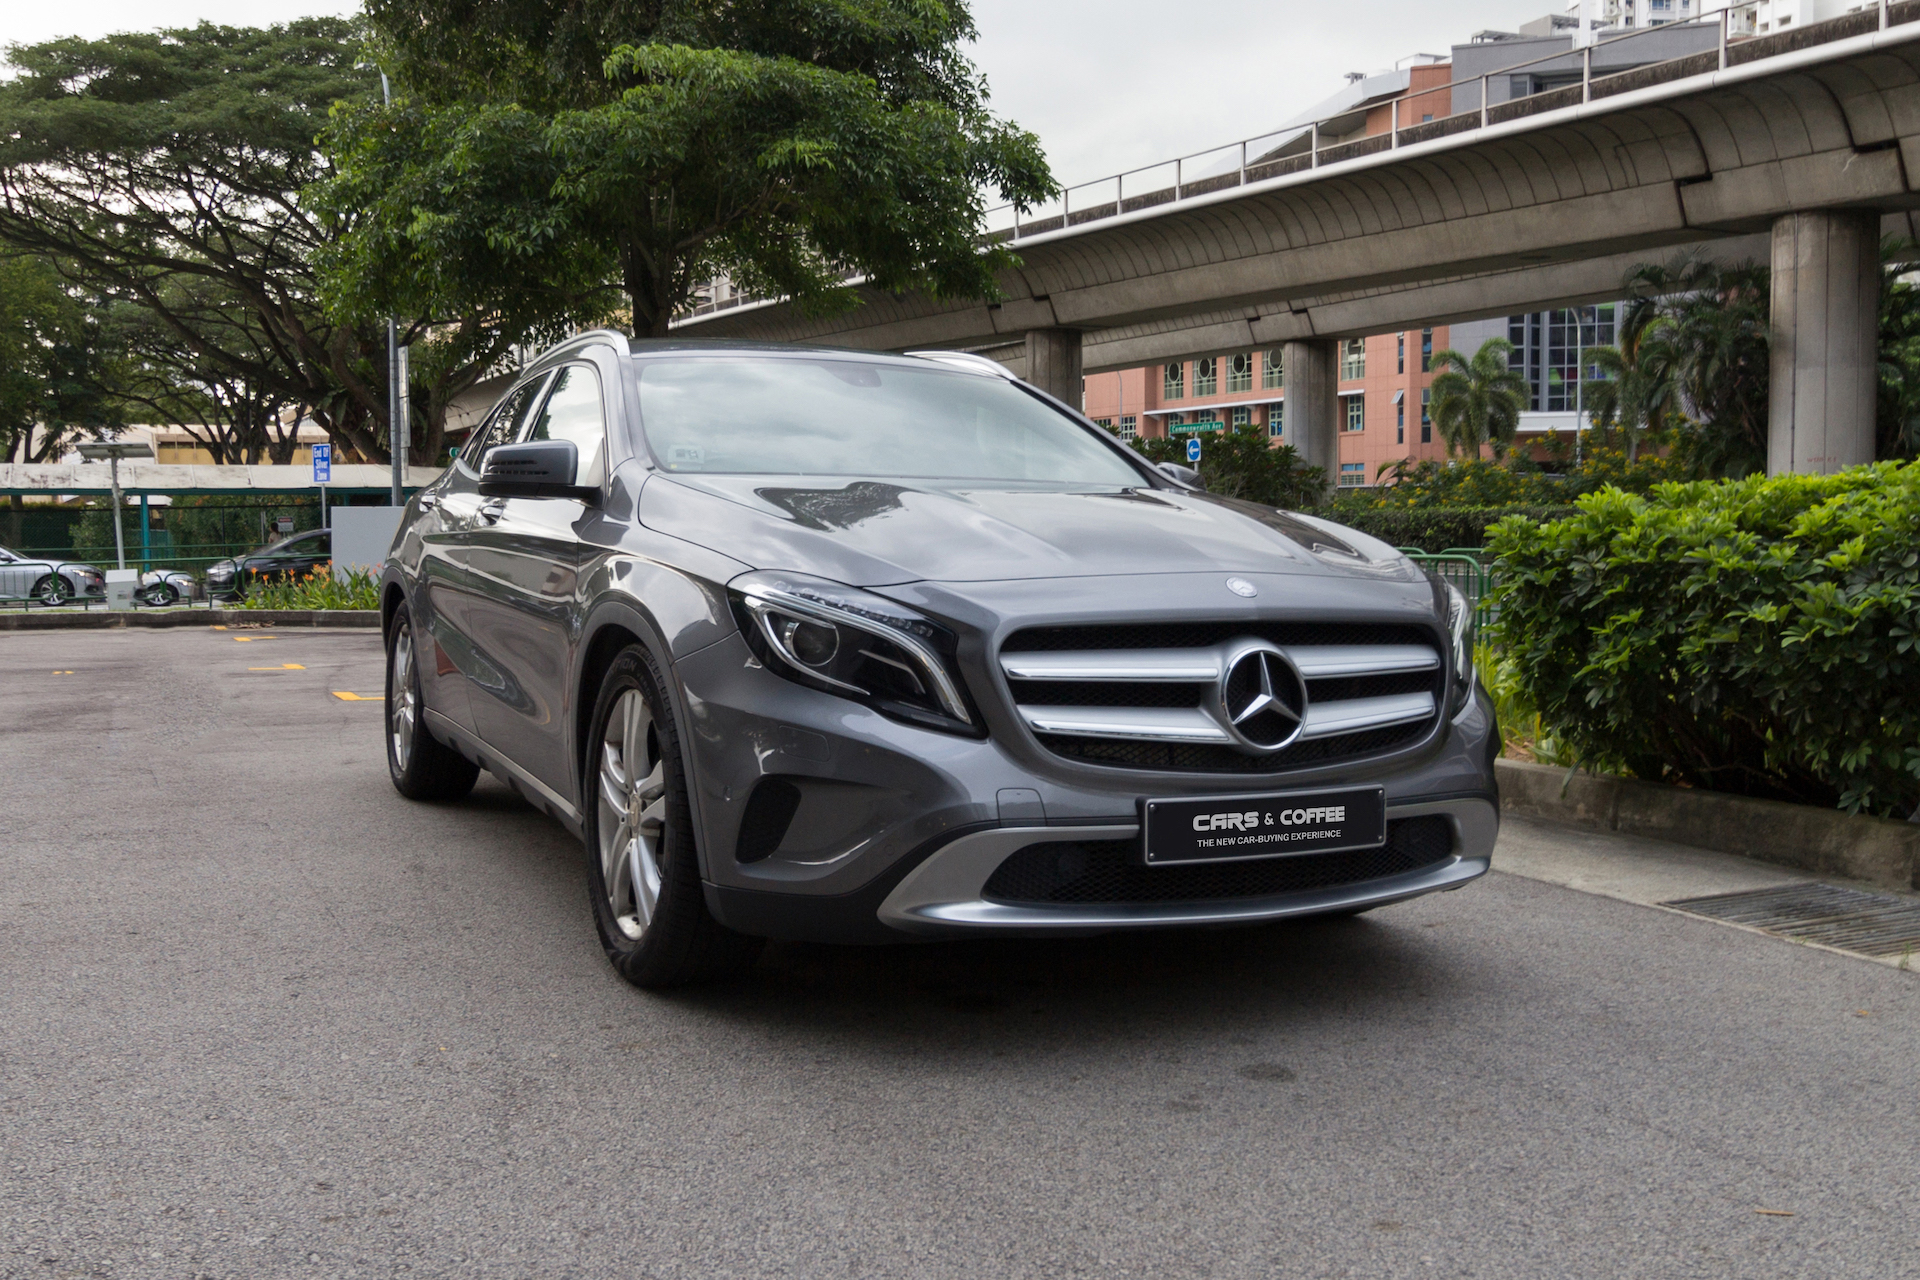 Certified Pre-Owned Mercedes-Benz GLA200 Urban   Cars and Coffee Singapore